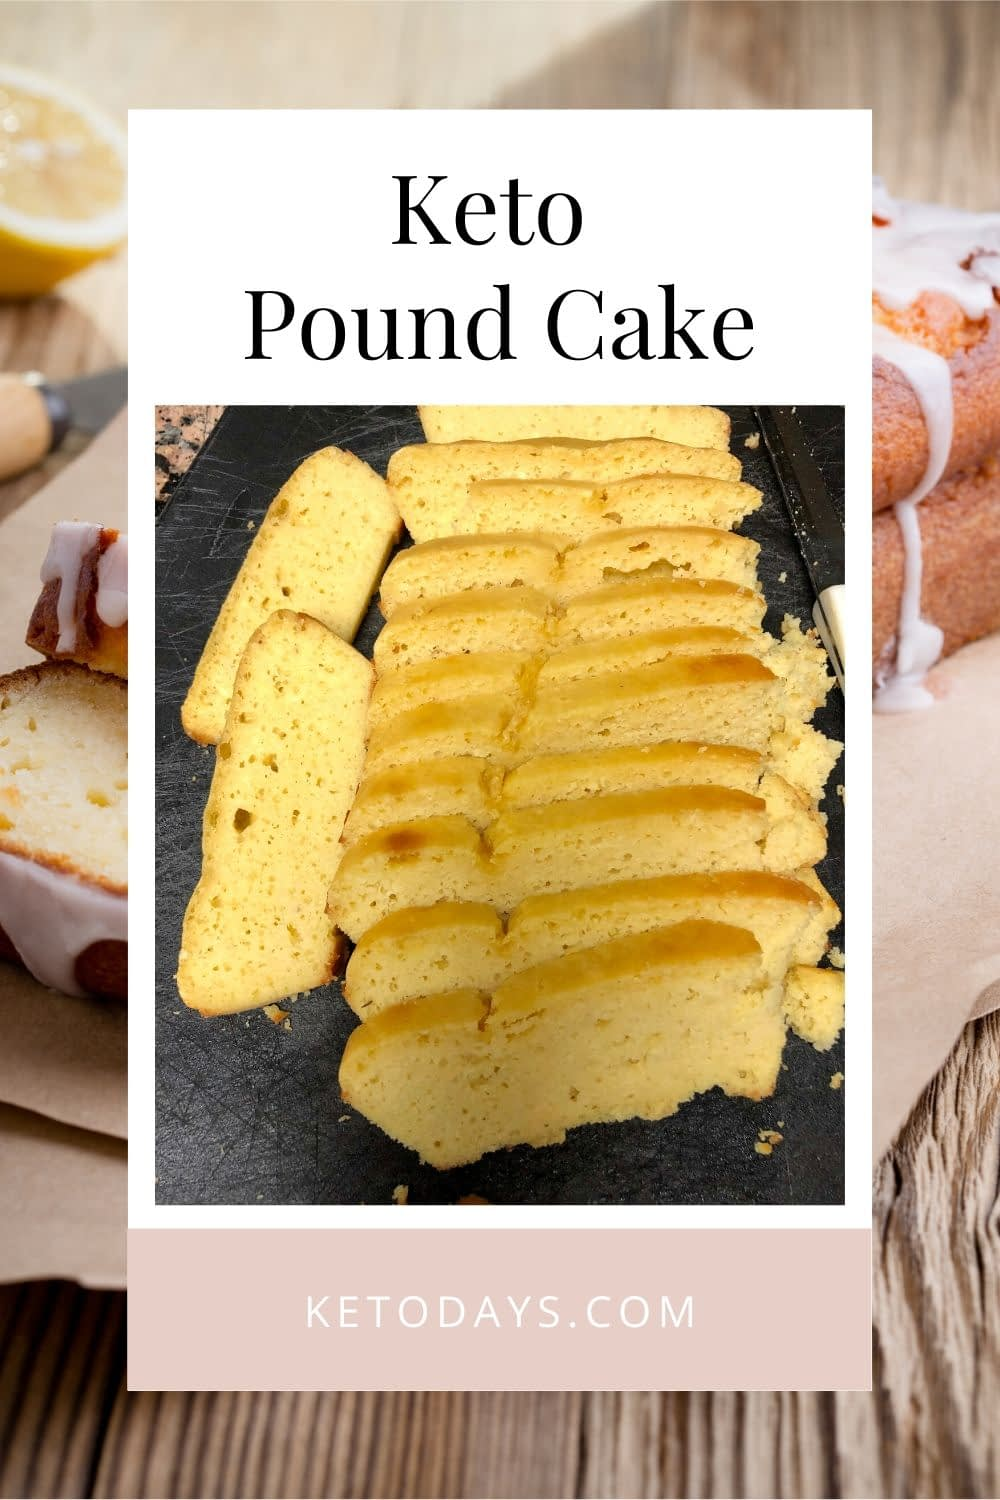 In my low carb recipes, I add things like protein powder, collagen (cause I'm over 40),  and mct oil. This Keto Pound Cake has all of those + Protein powder. You can skip them as they are not necessary to make the cake.